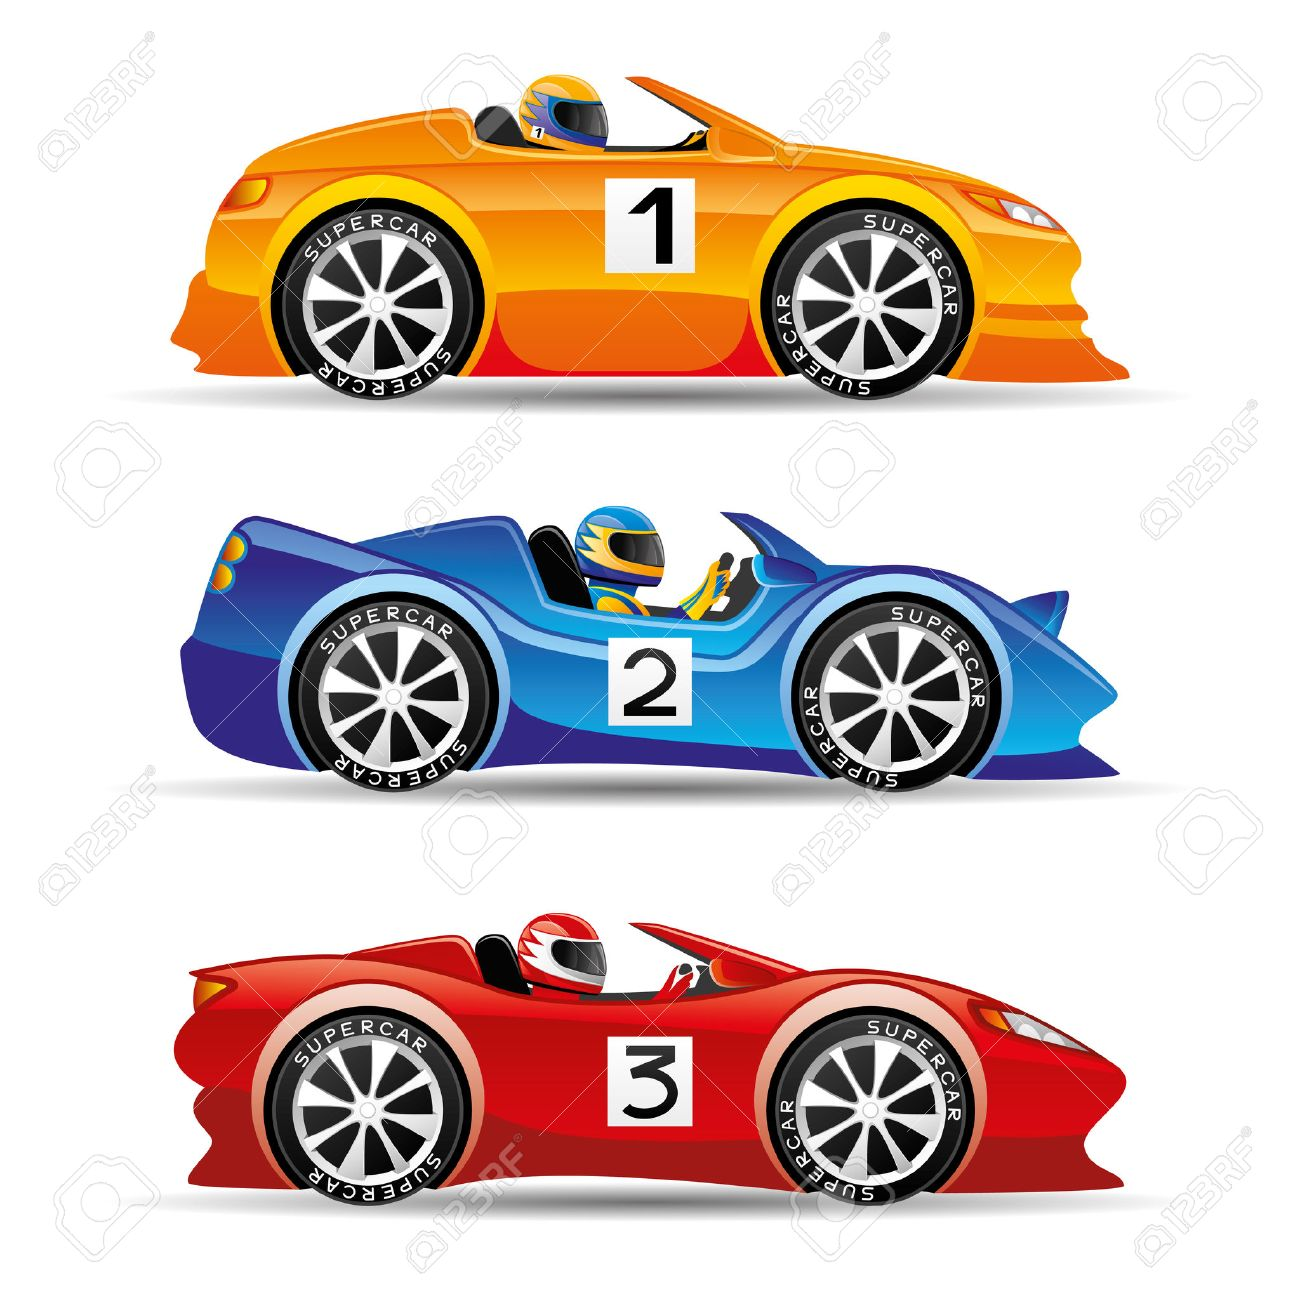 Racing Cars Royalty Free Cliparts Vectors And Stock